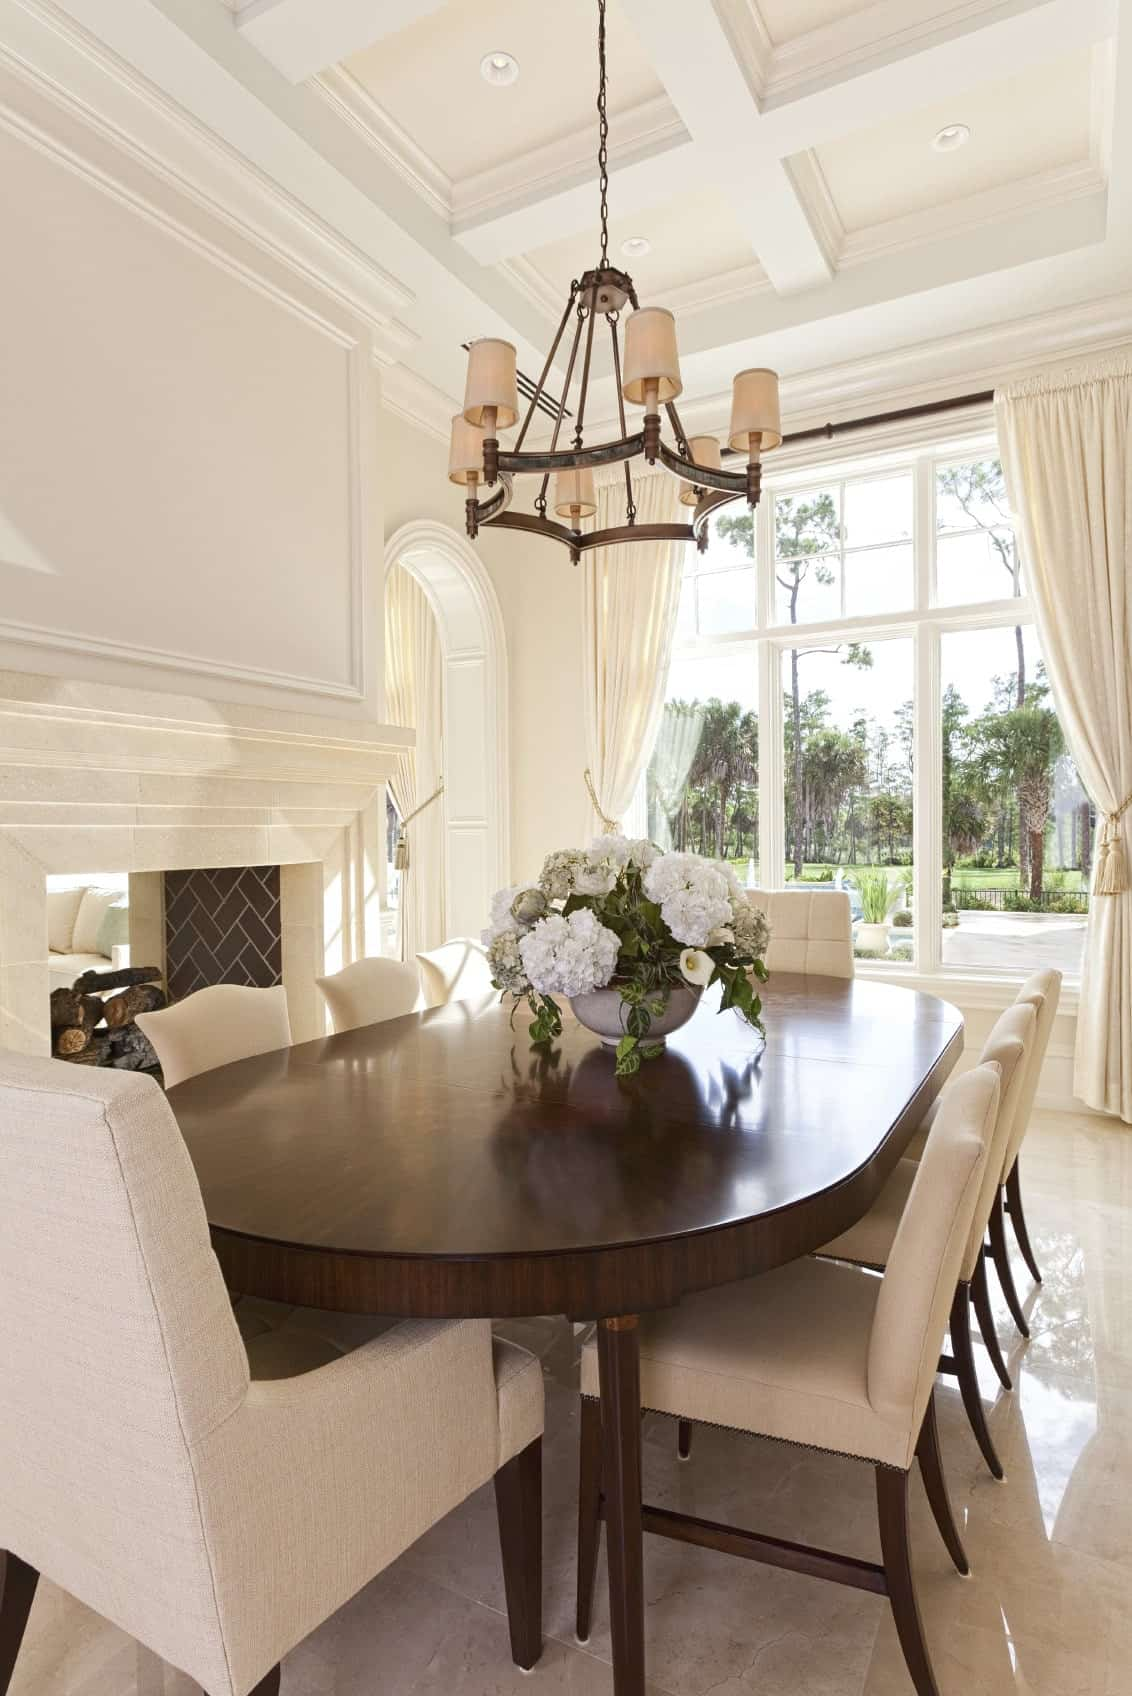 50 Dining Rooms With Oval Dining Tables (Photos